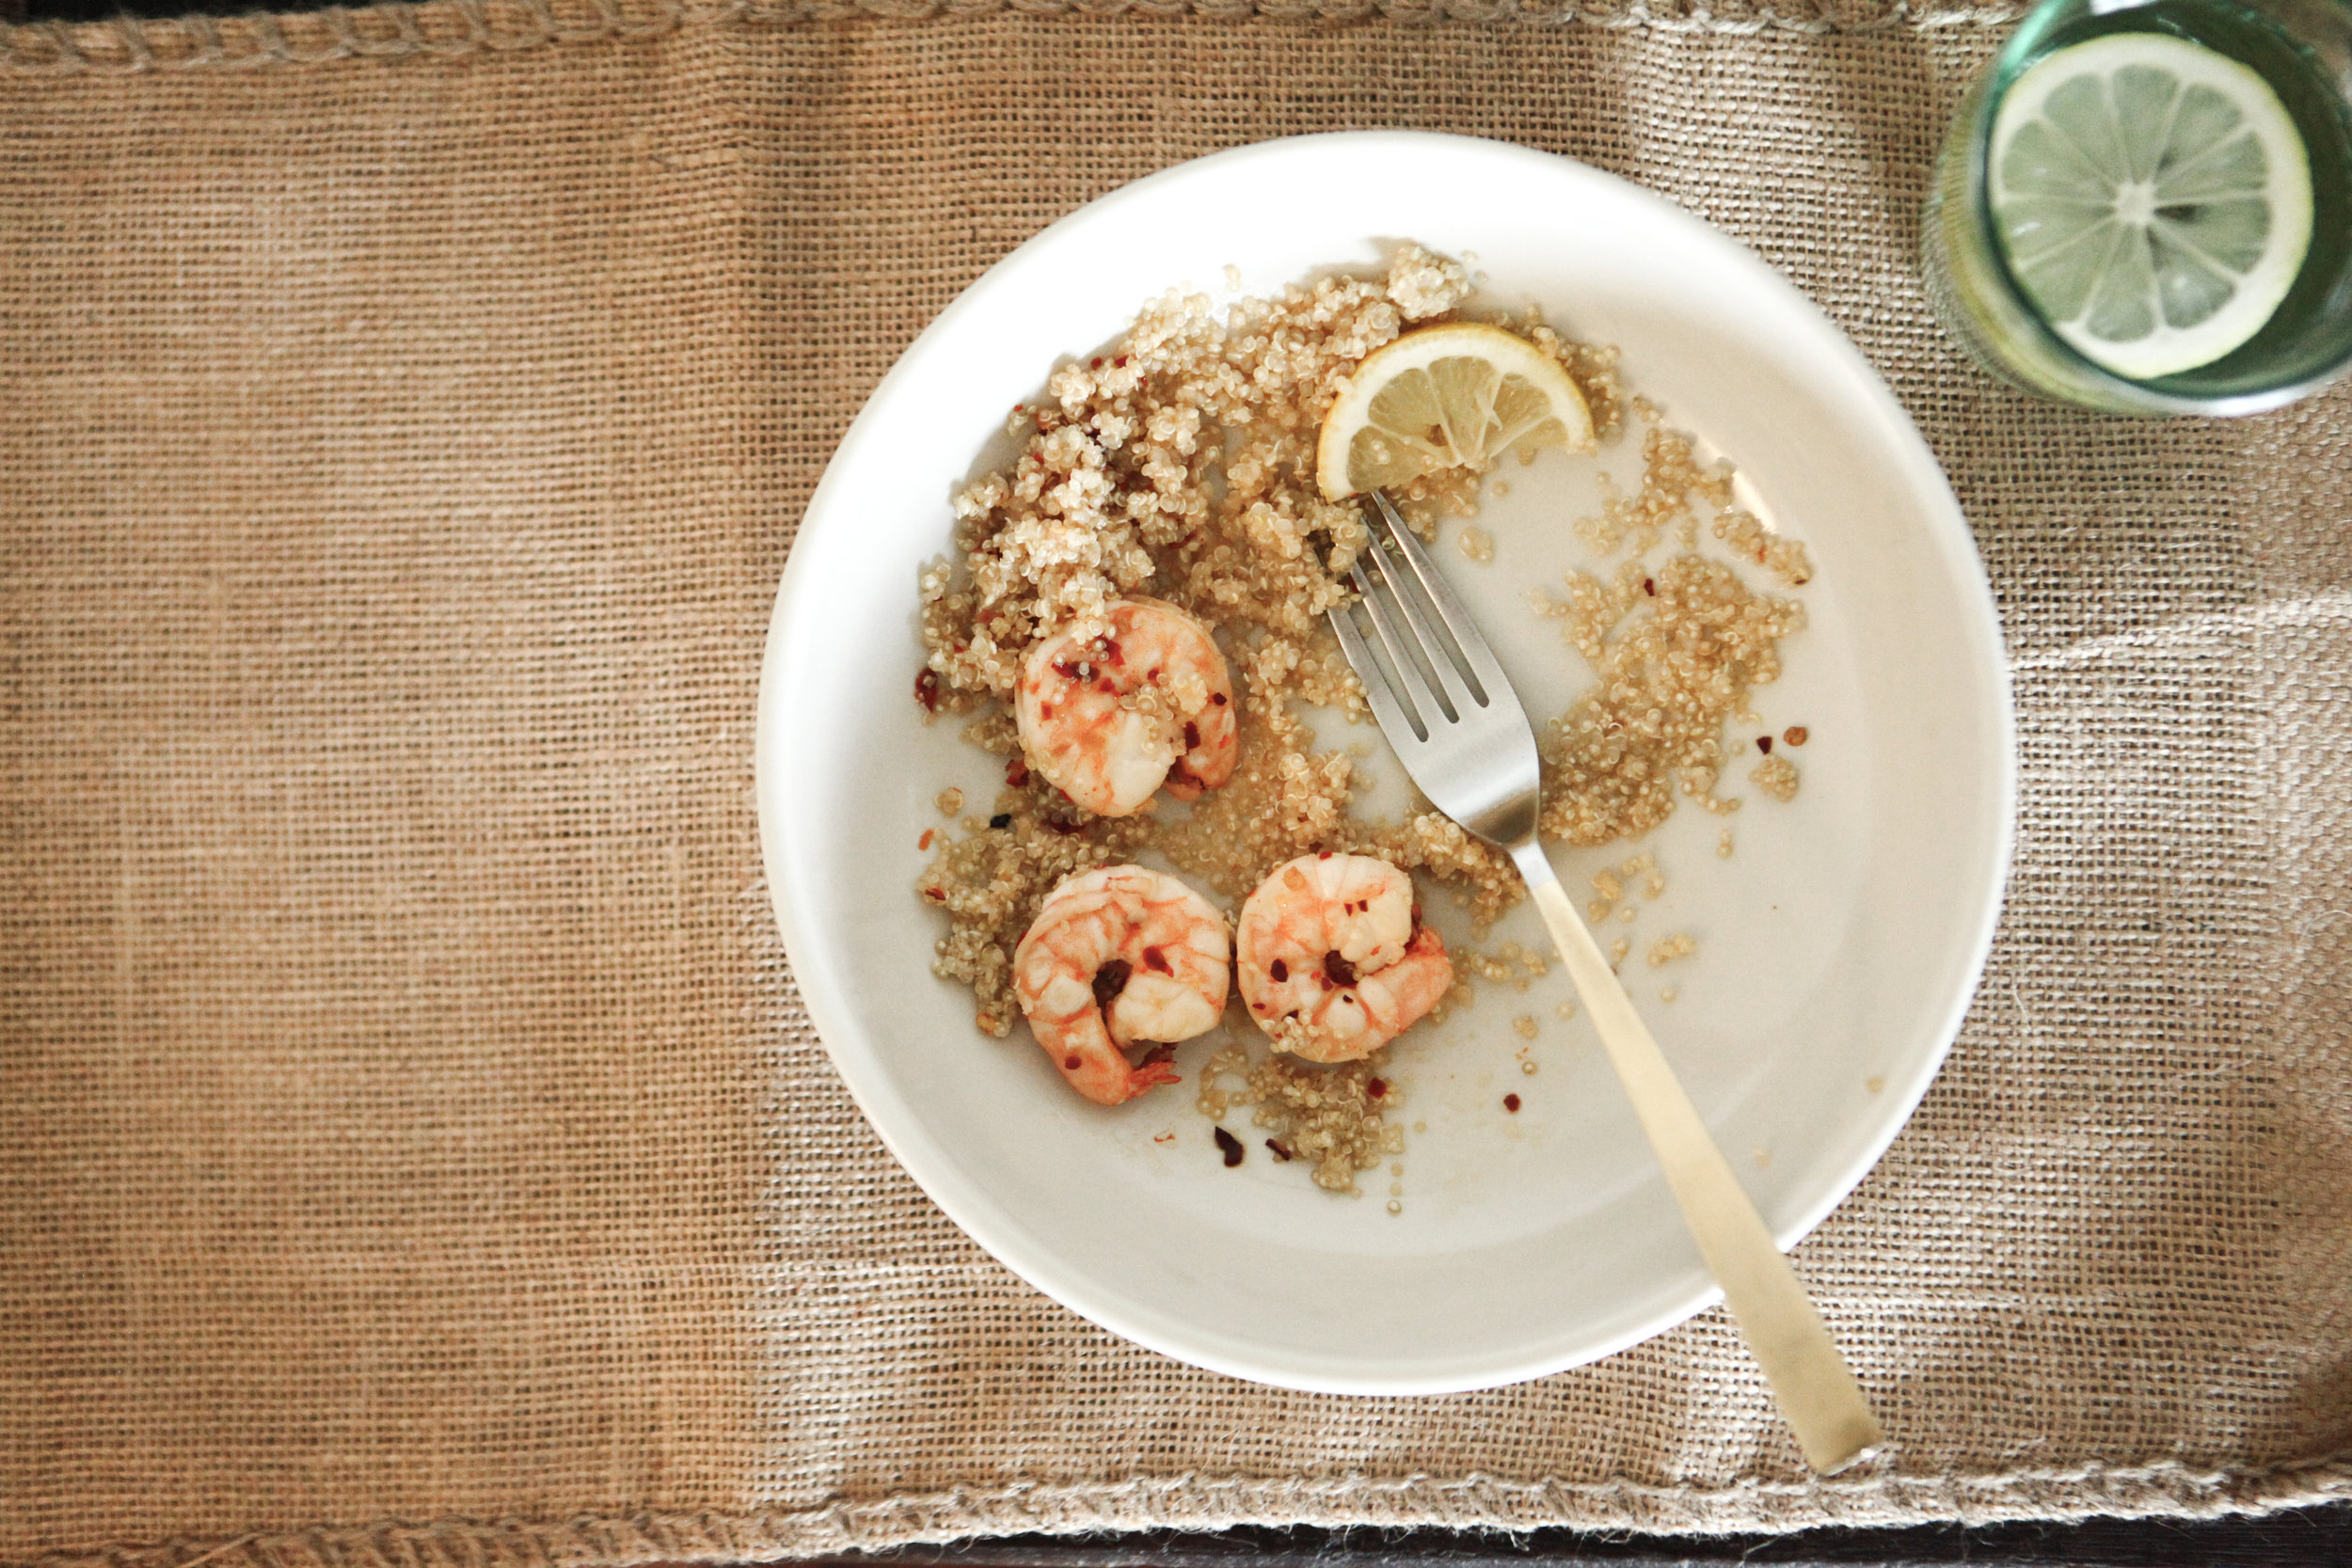 lemon-chili-prawns.jpg